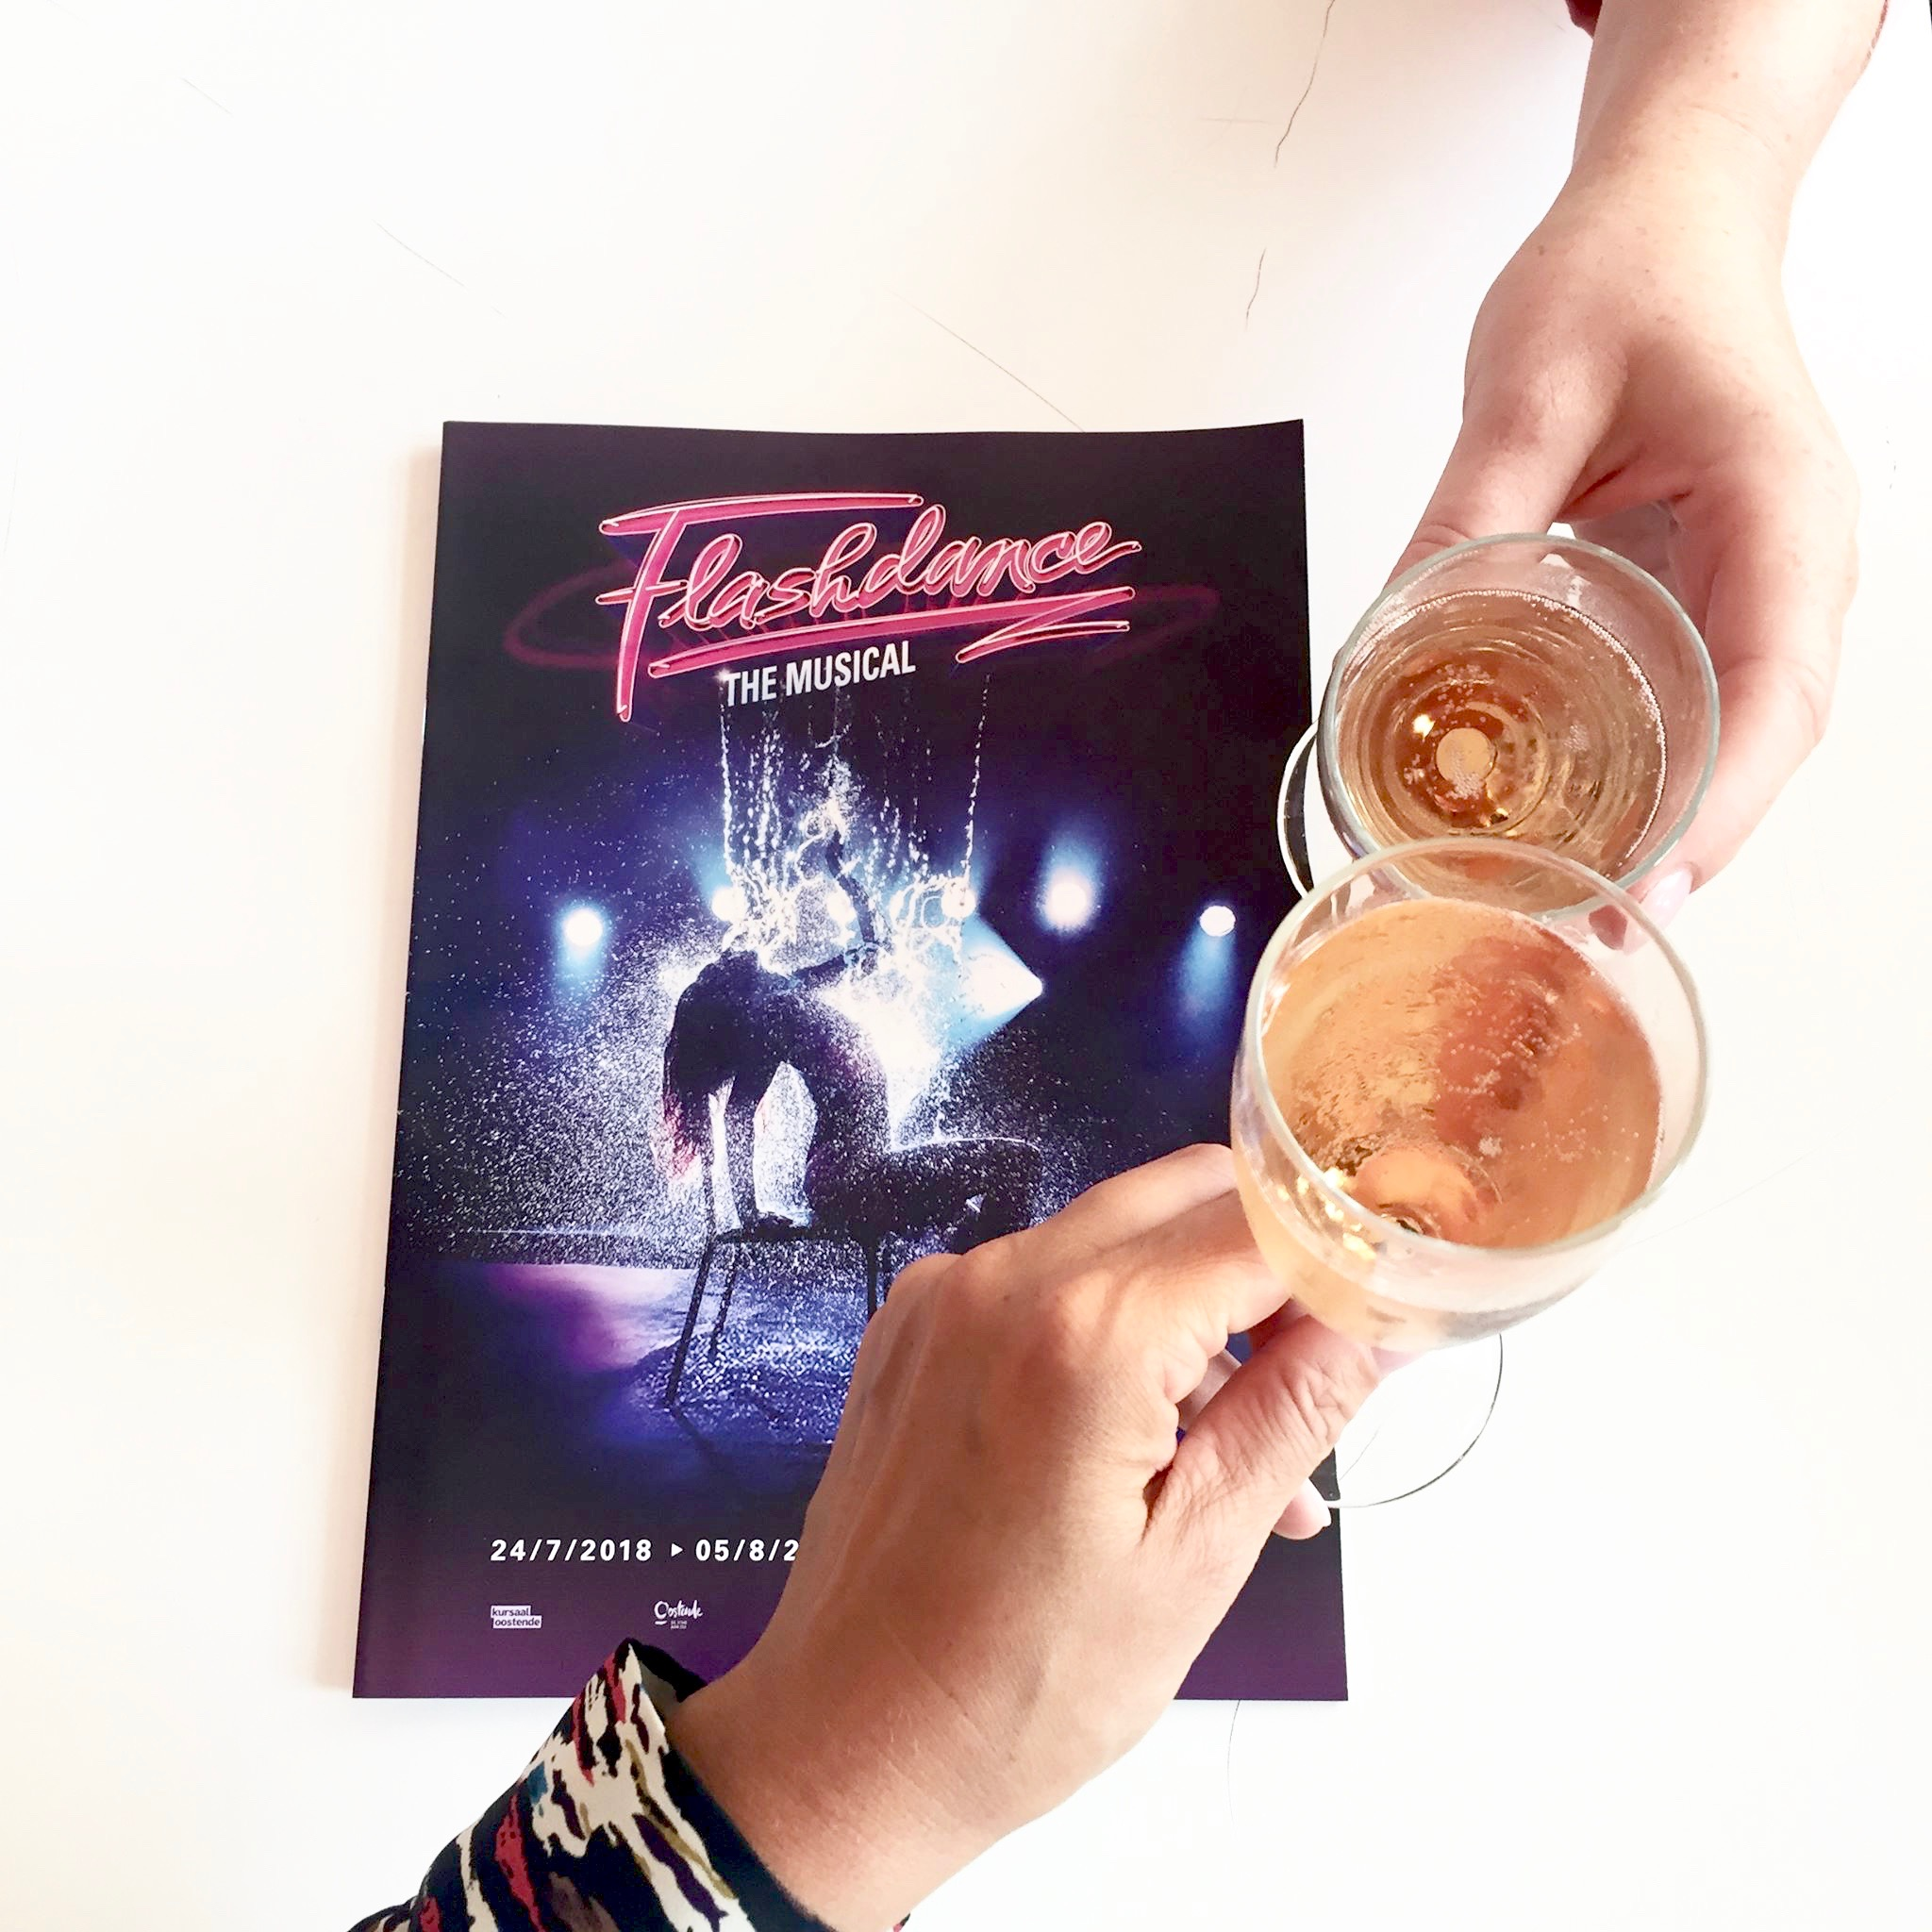 Flashdance musical Kursaal Oostende